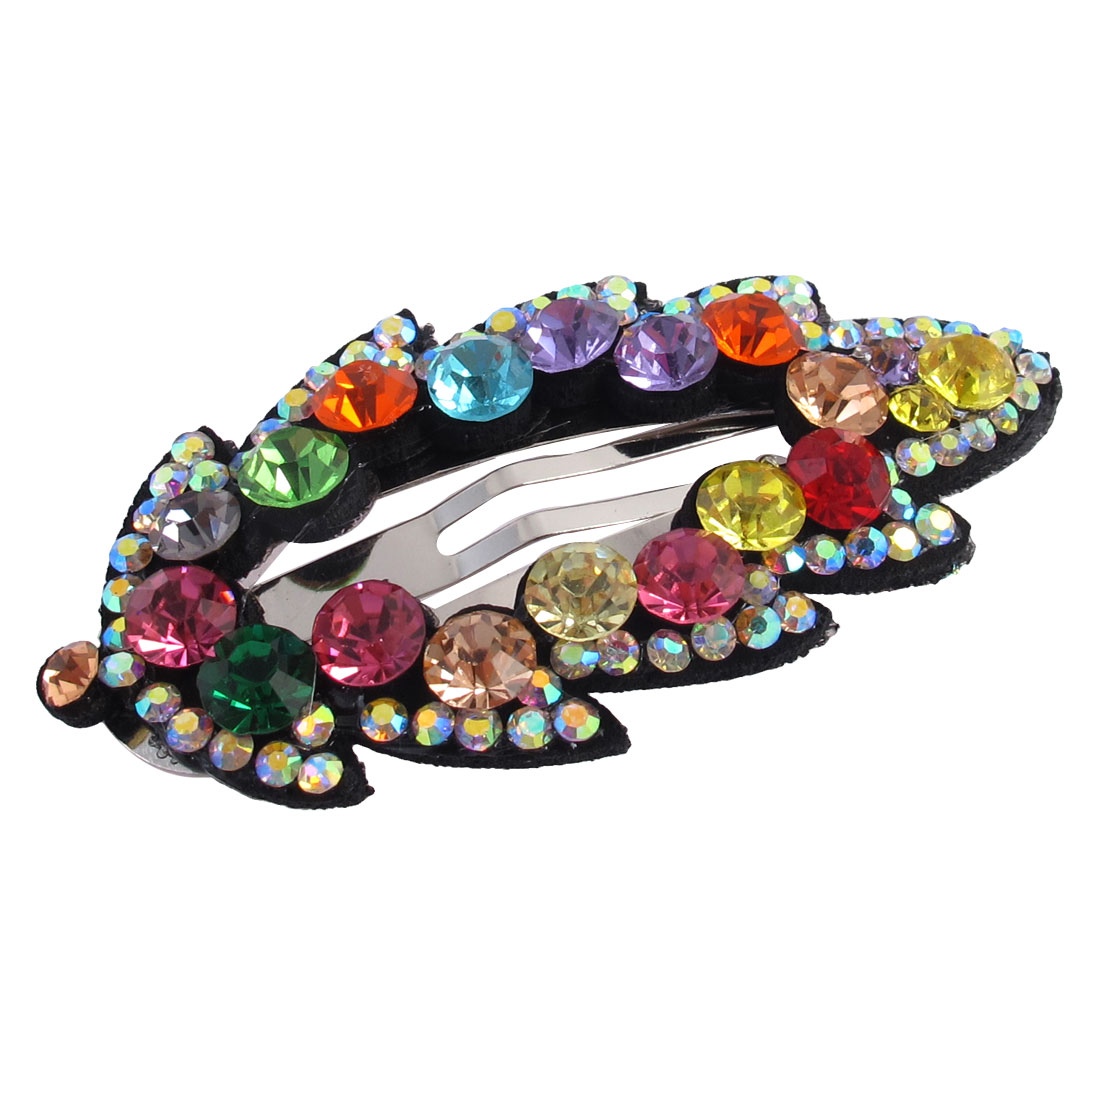 Lady Faux Rhinestone Decor Leaf Design Hairpin Snap Barrette Hair Clip